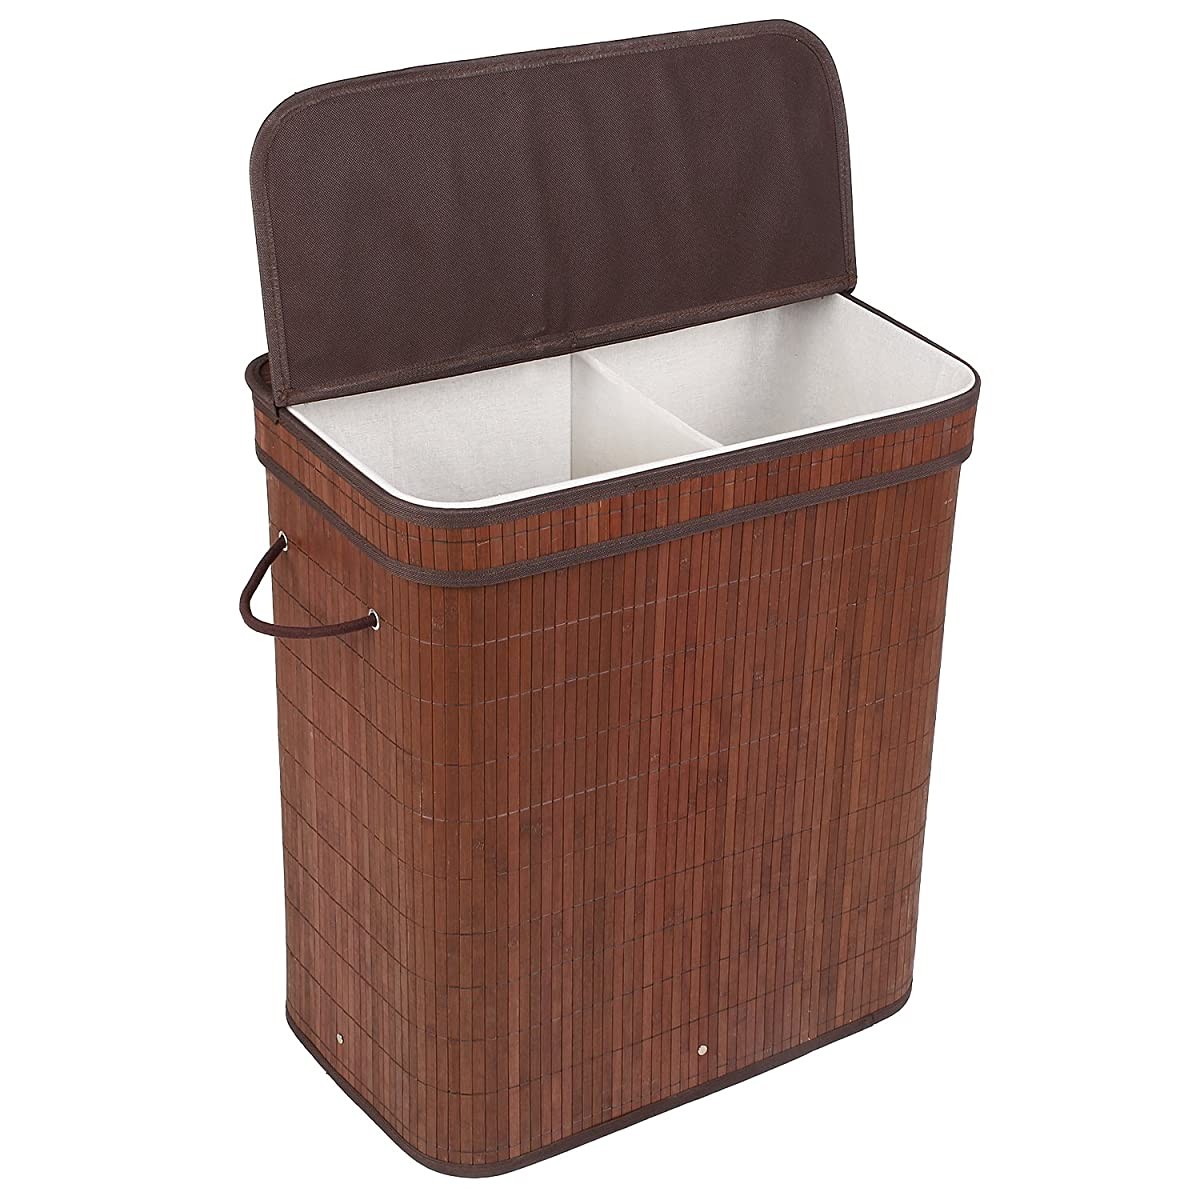 Hamper With Liner Homfa Bamboo Laundry Hamper With Cloth Liner And Removable